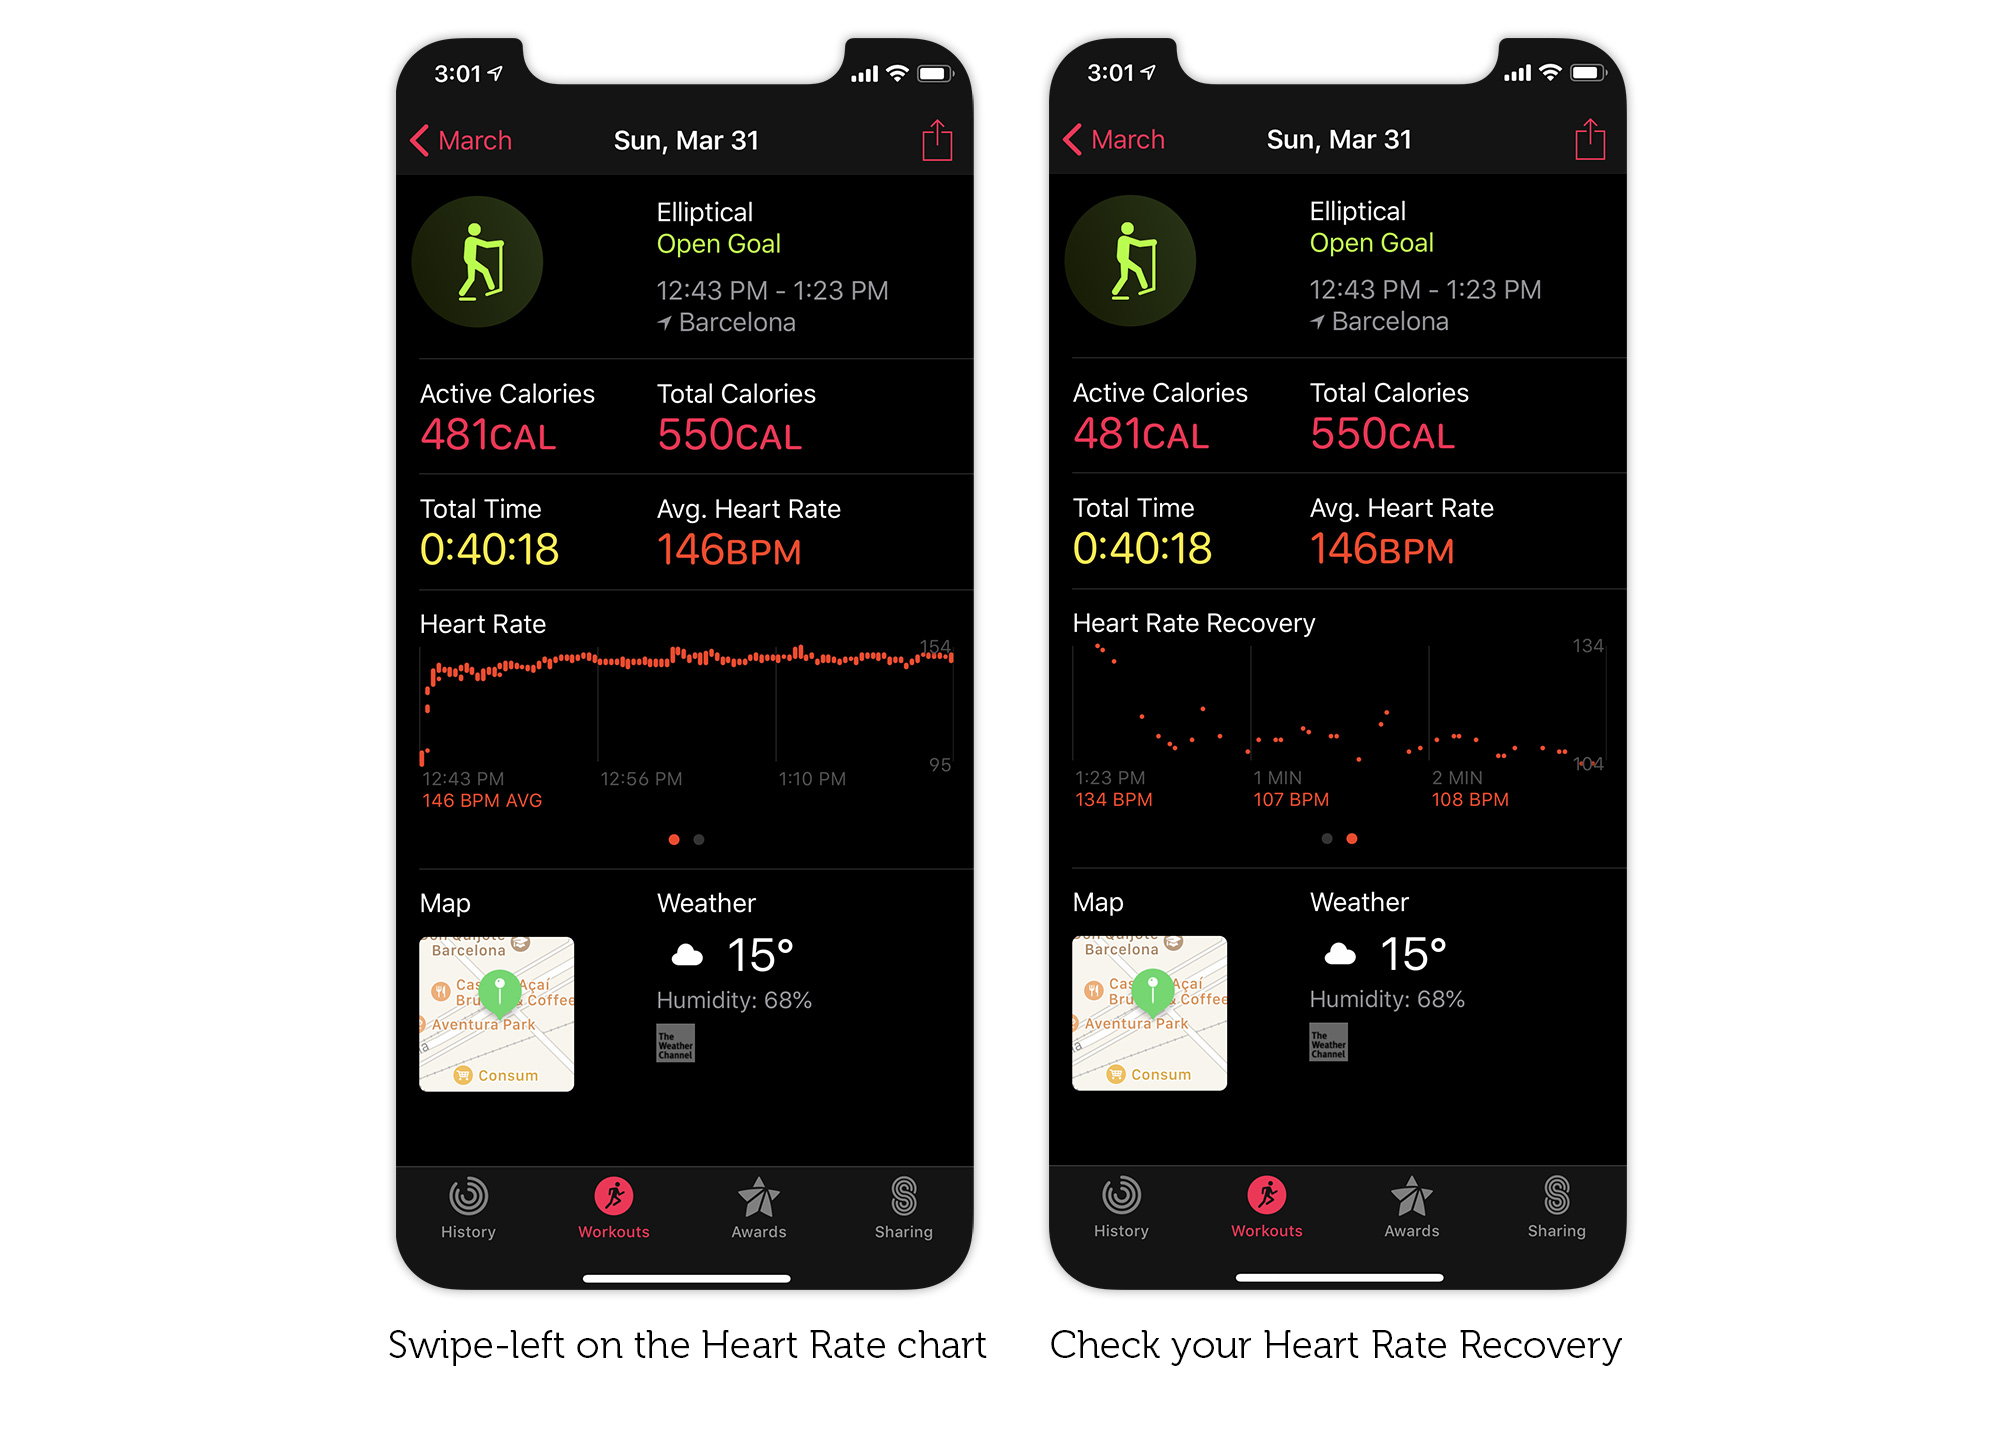 How to check your Heart Rate Recovery in the iPhone Activity app.